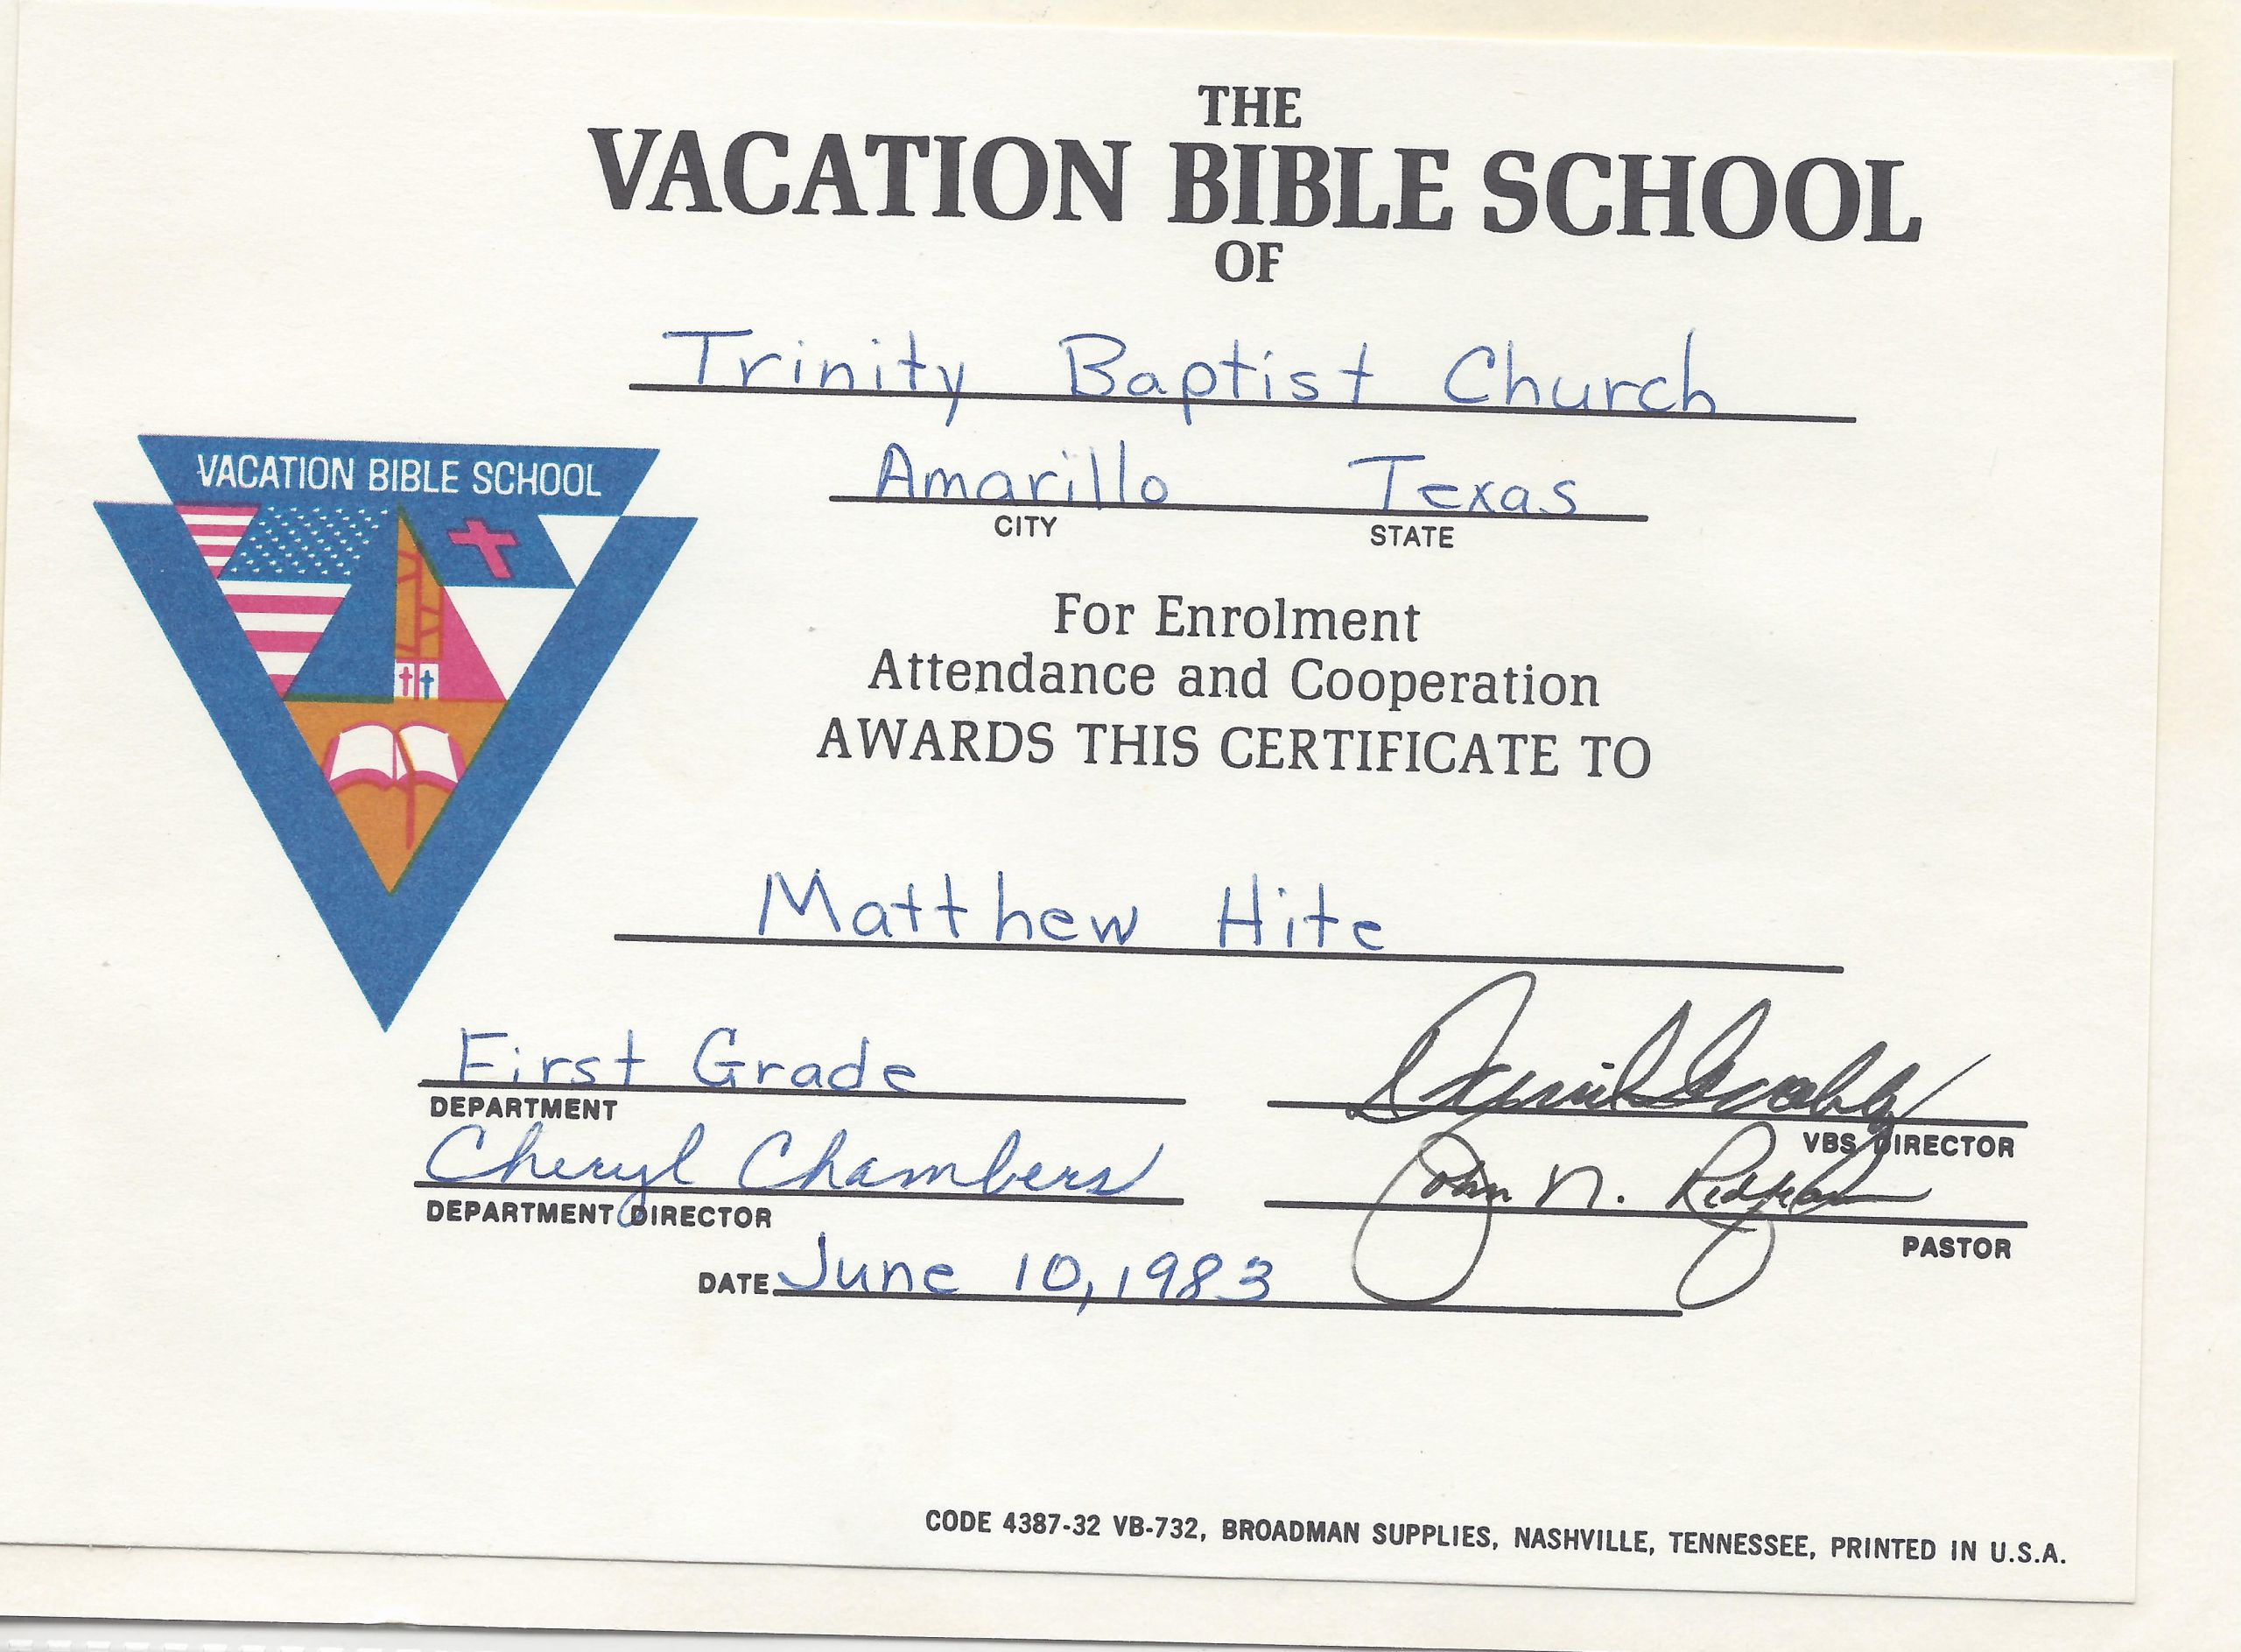 Vbs Certificate Of attendance Inspirational Amarillo – Page 6 – Matthew Walter Hite Amarillo Texas